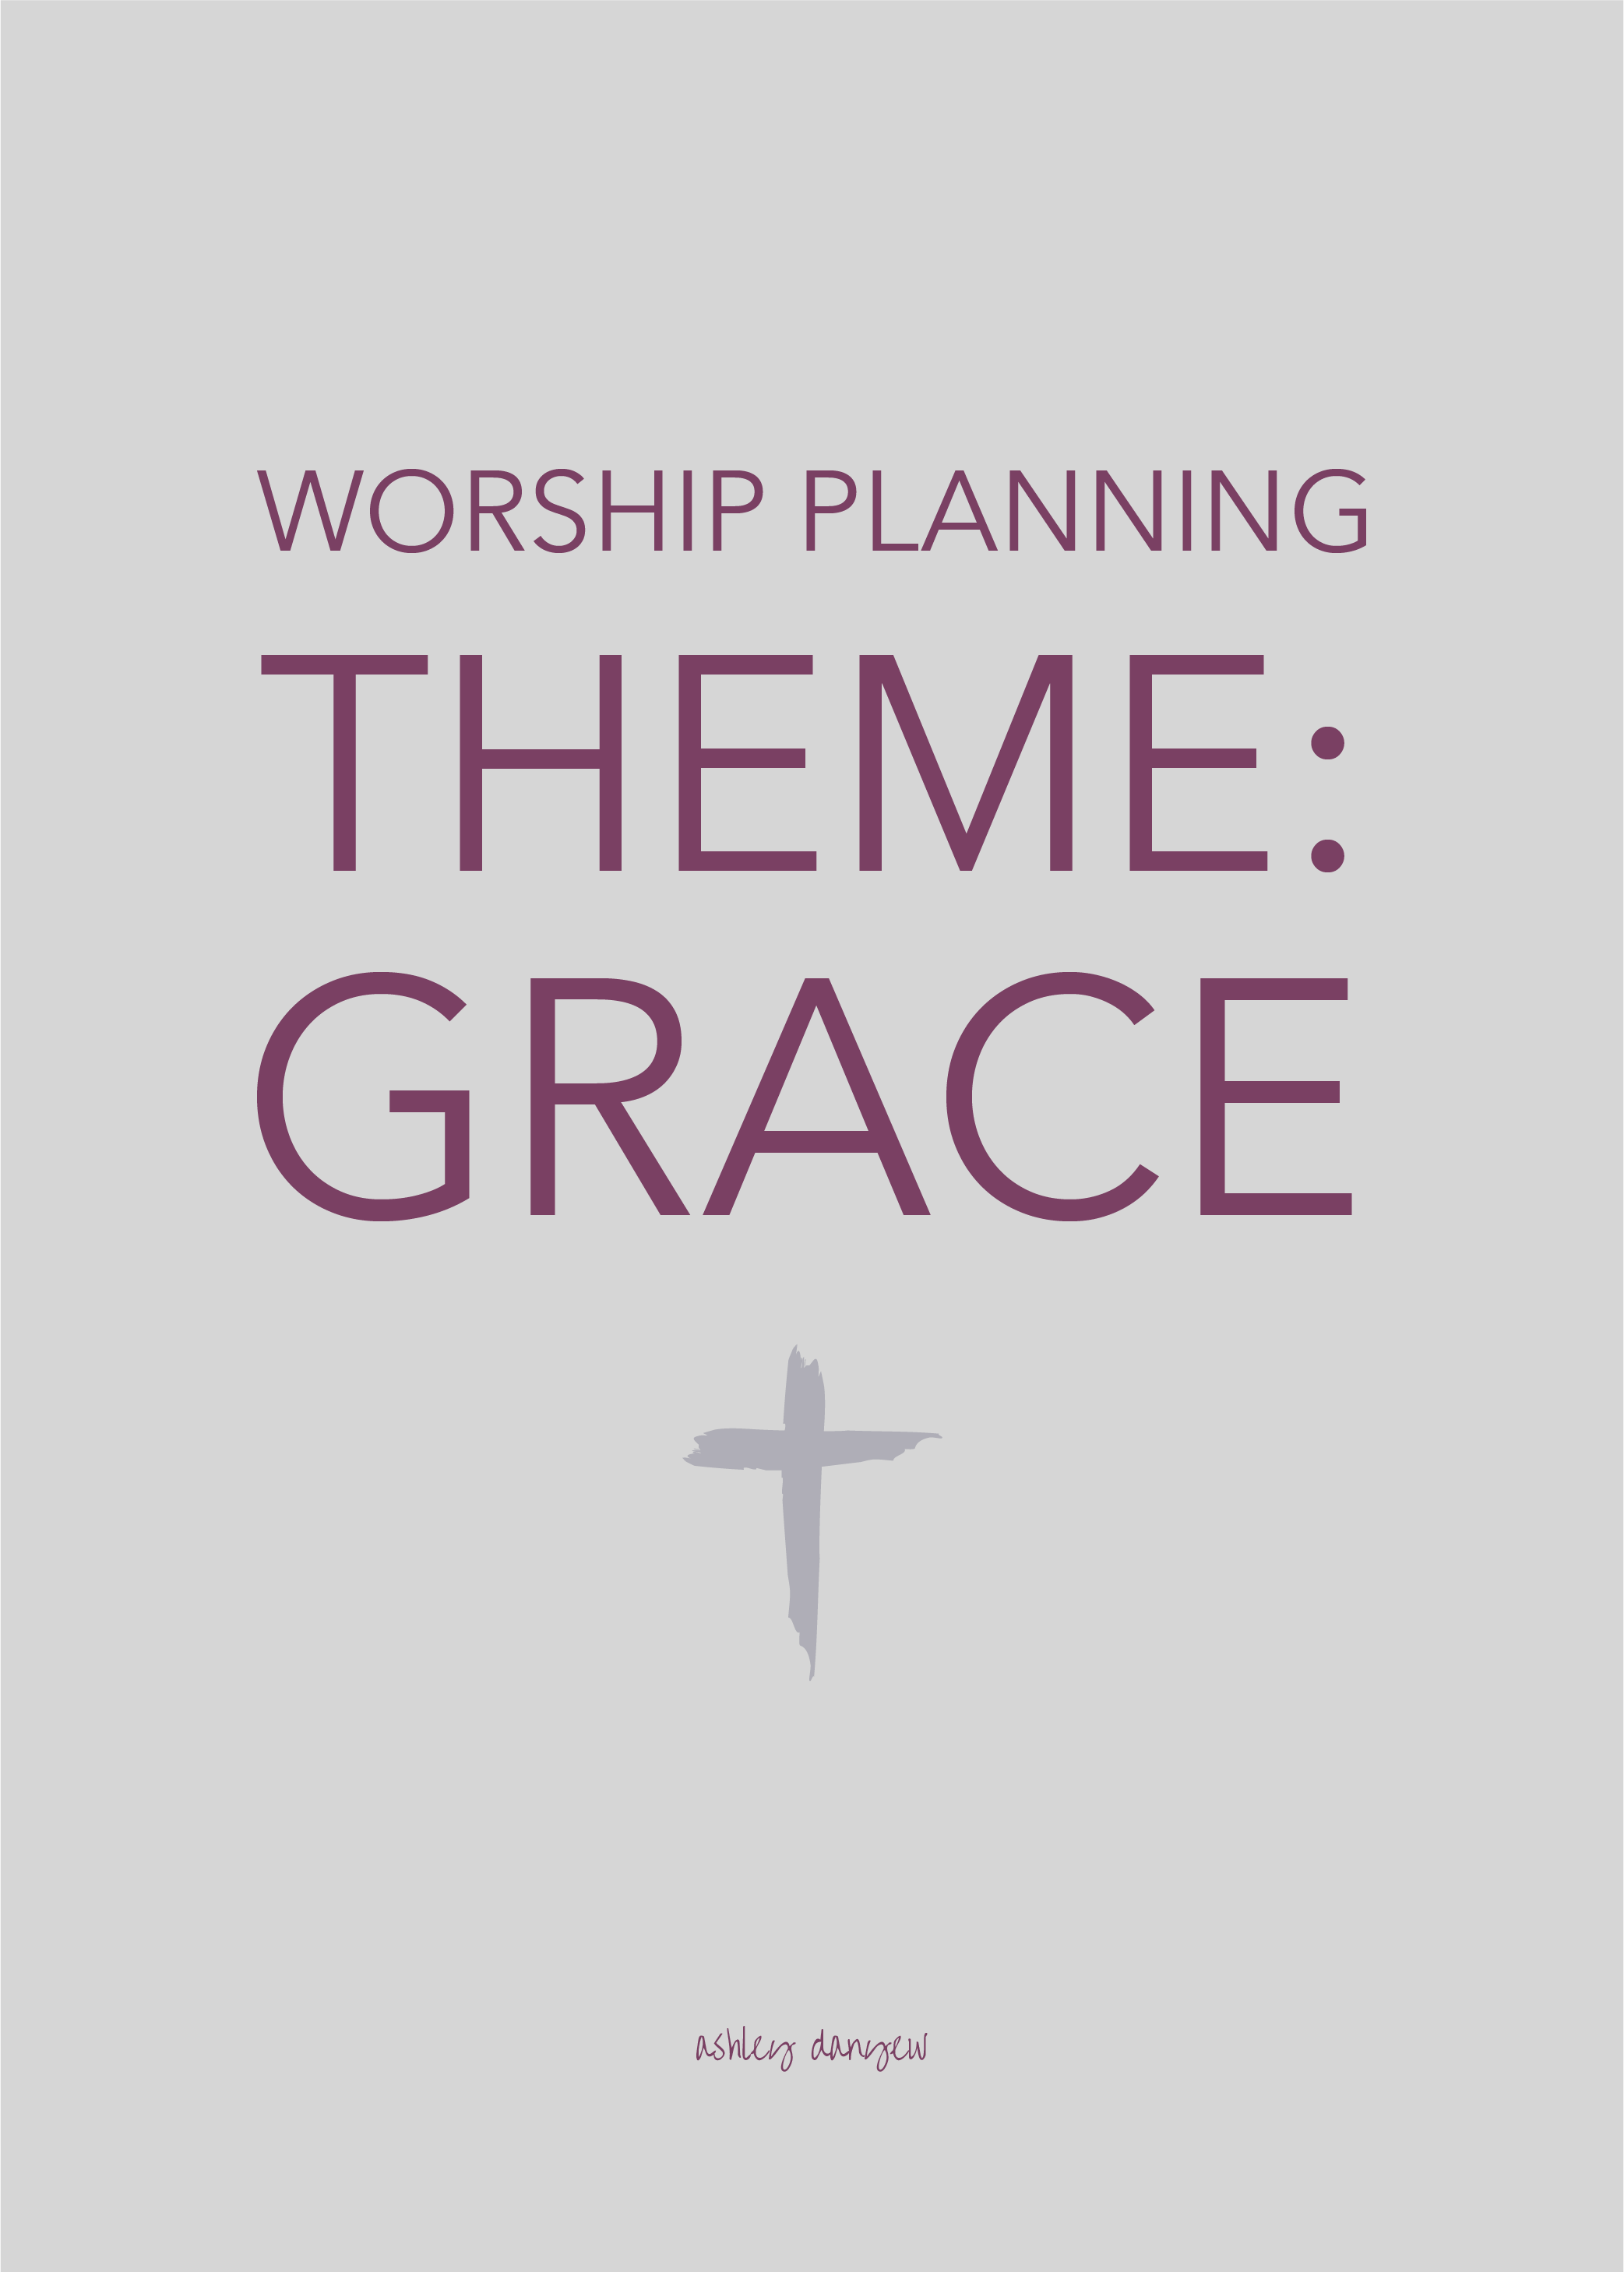 Copy of Worship Planning Theme: Grace